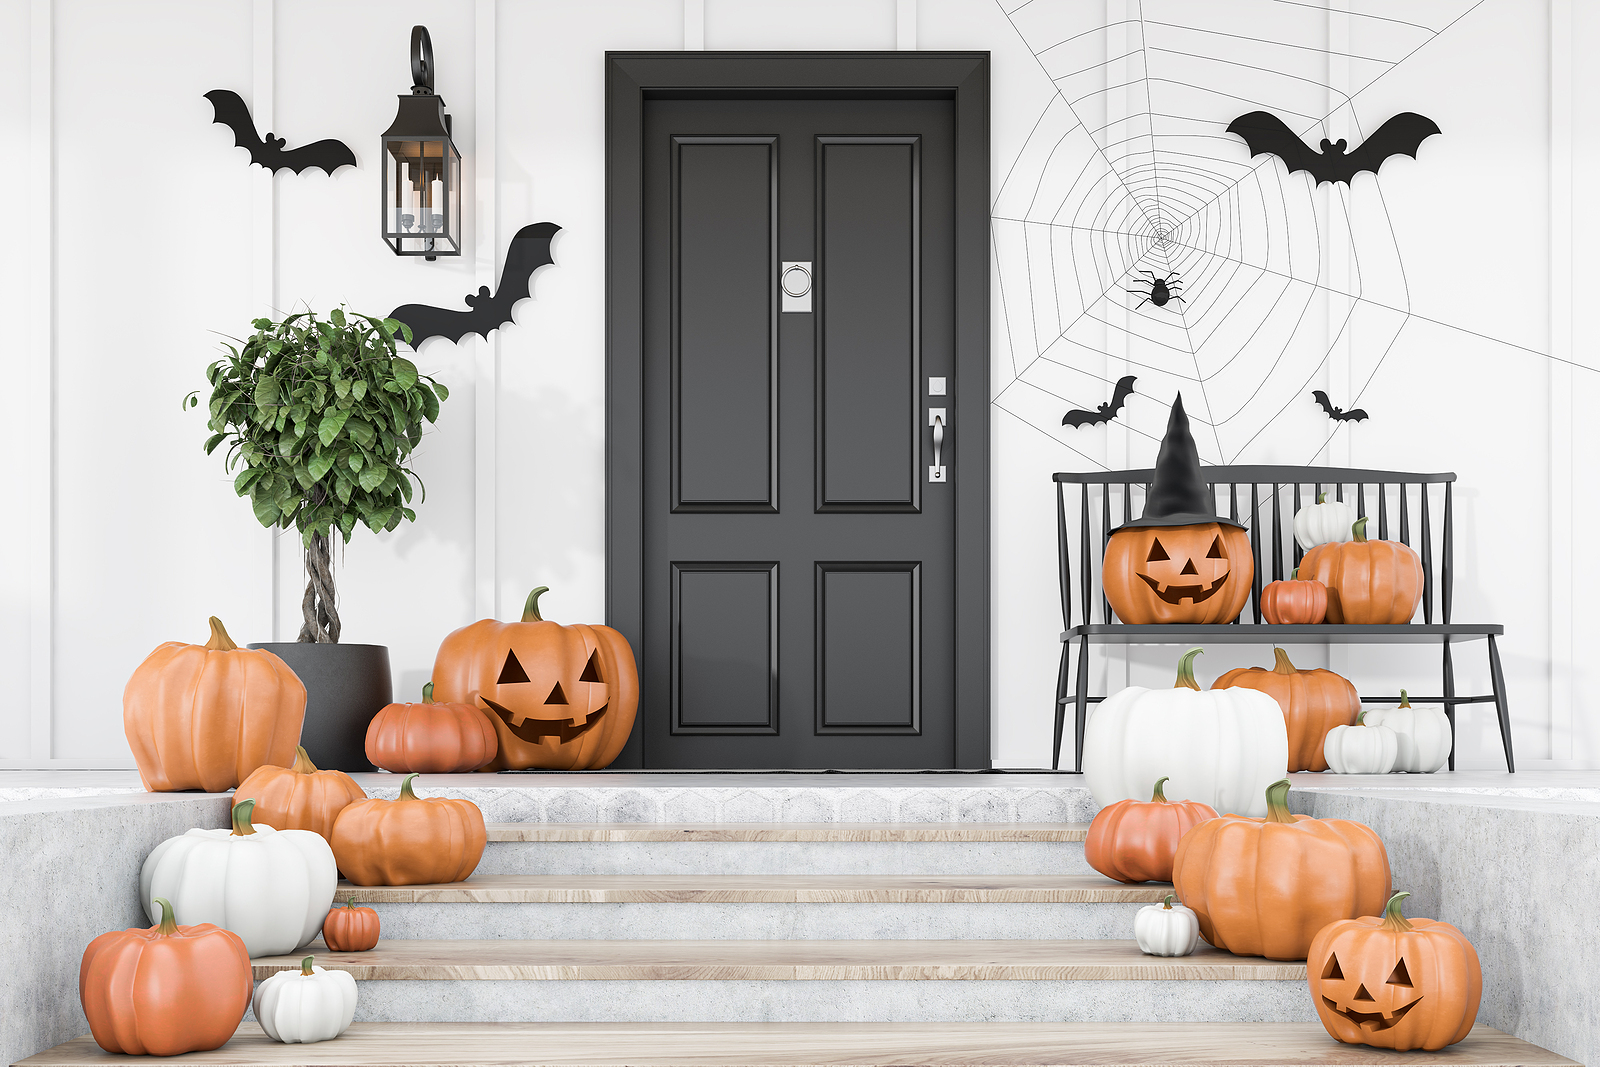 Front porch decorated with pumpkins, bats, and spiders for Halloween